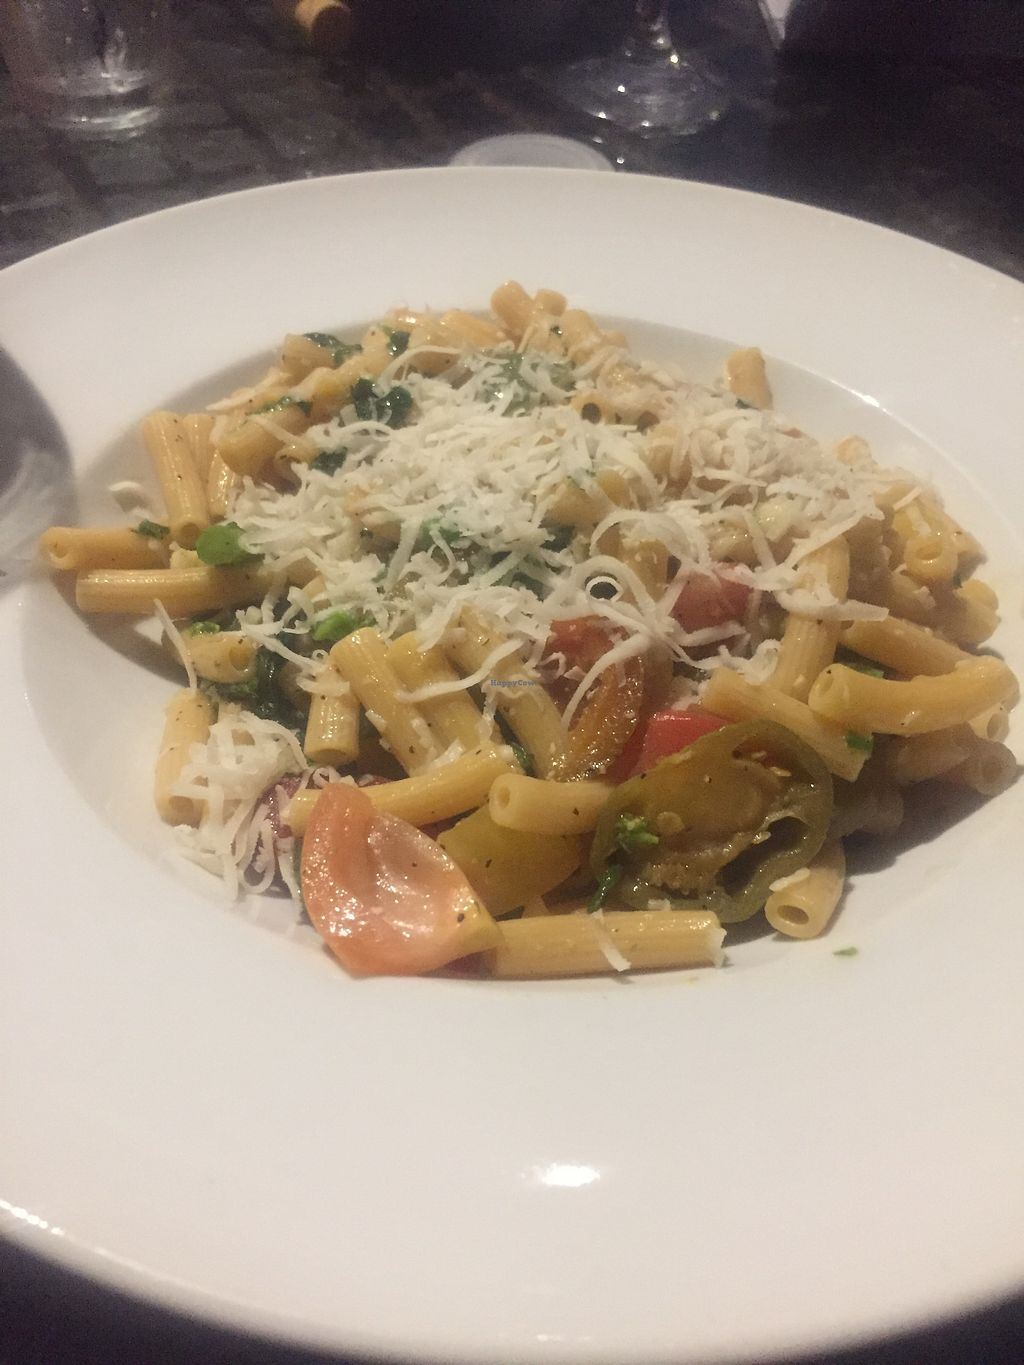 """Photo of Three Vines Bistro  by <a href=""""/members/profile/KaitlynnGill"""">KaitlynnGill</a> <br/>Chickpea pasta which is vegan and gf and asked to add almond cheese! <br/> July 8, 2017  - <a href='/contact/abuse/image/95385/277854'>Report</a>"""